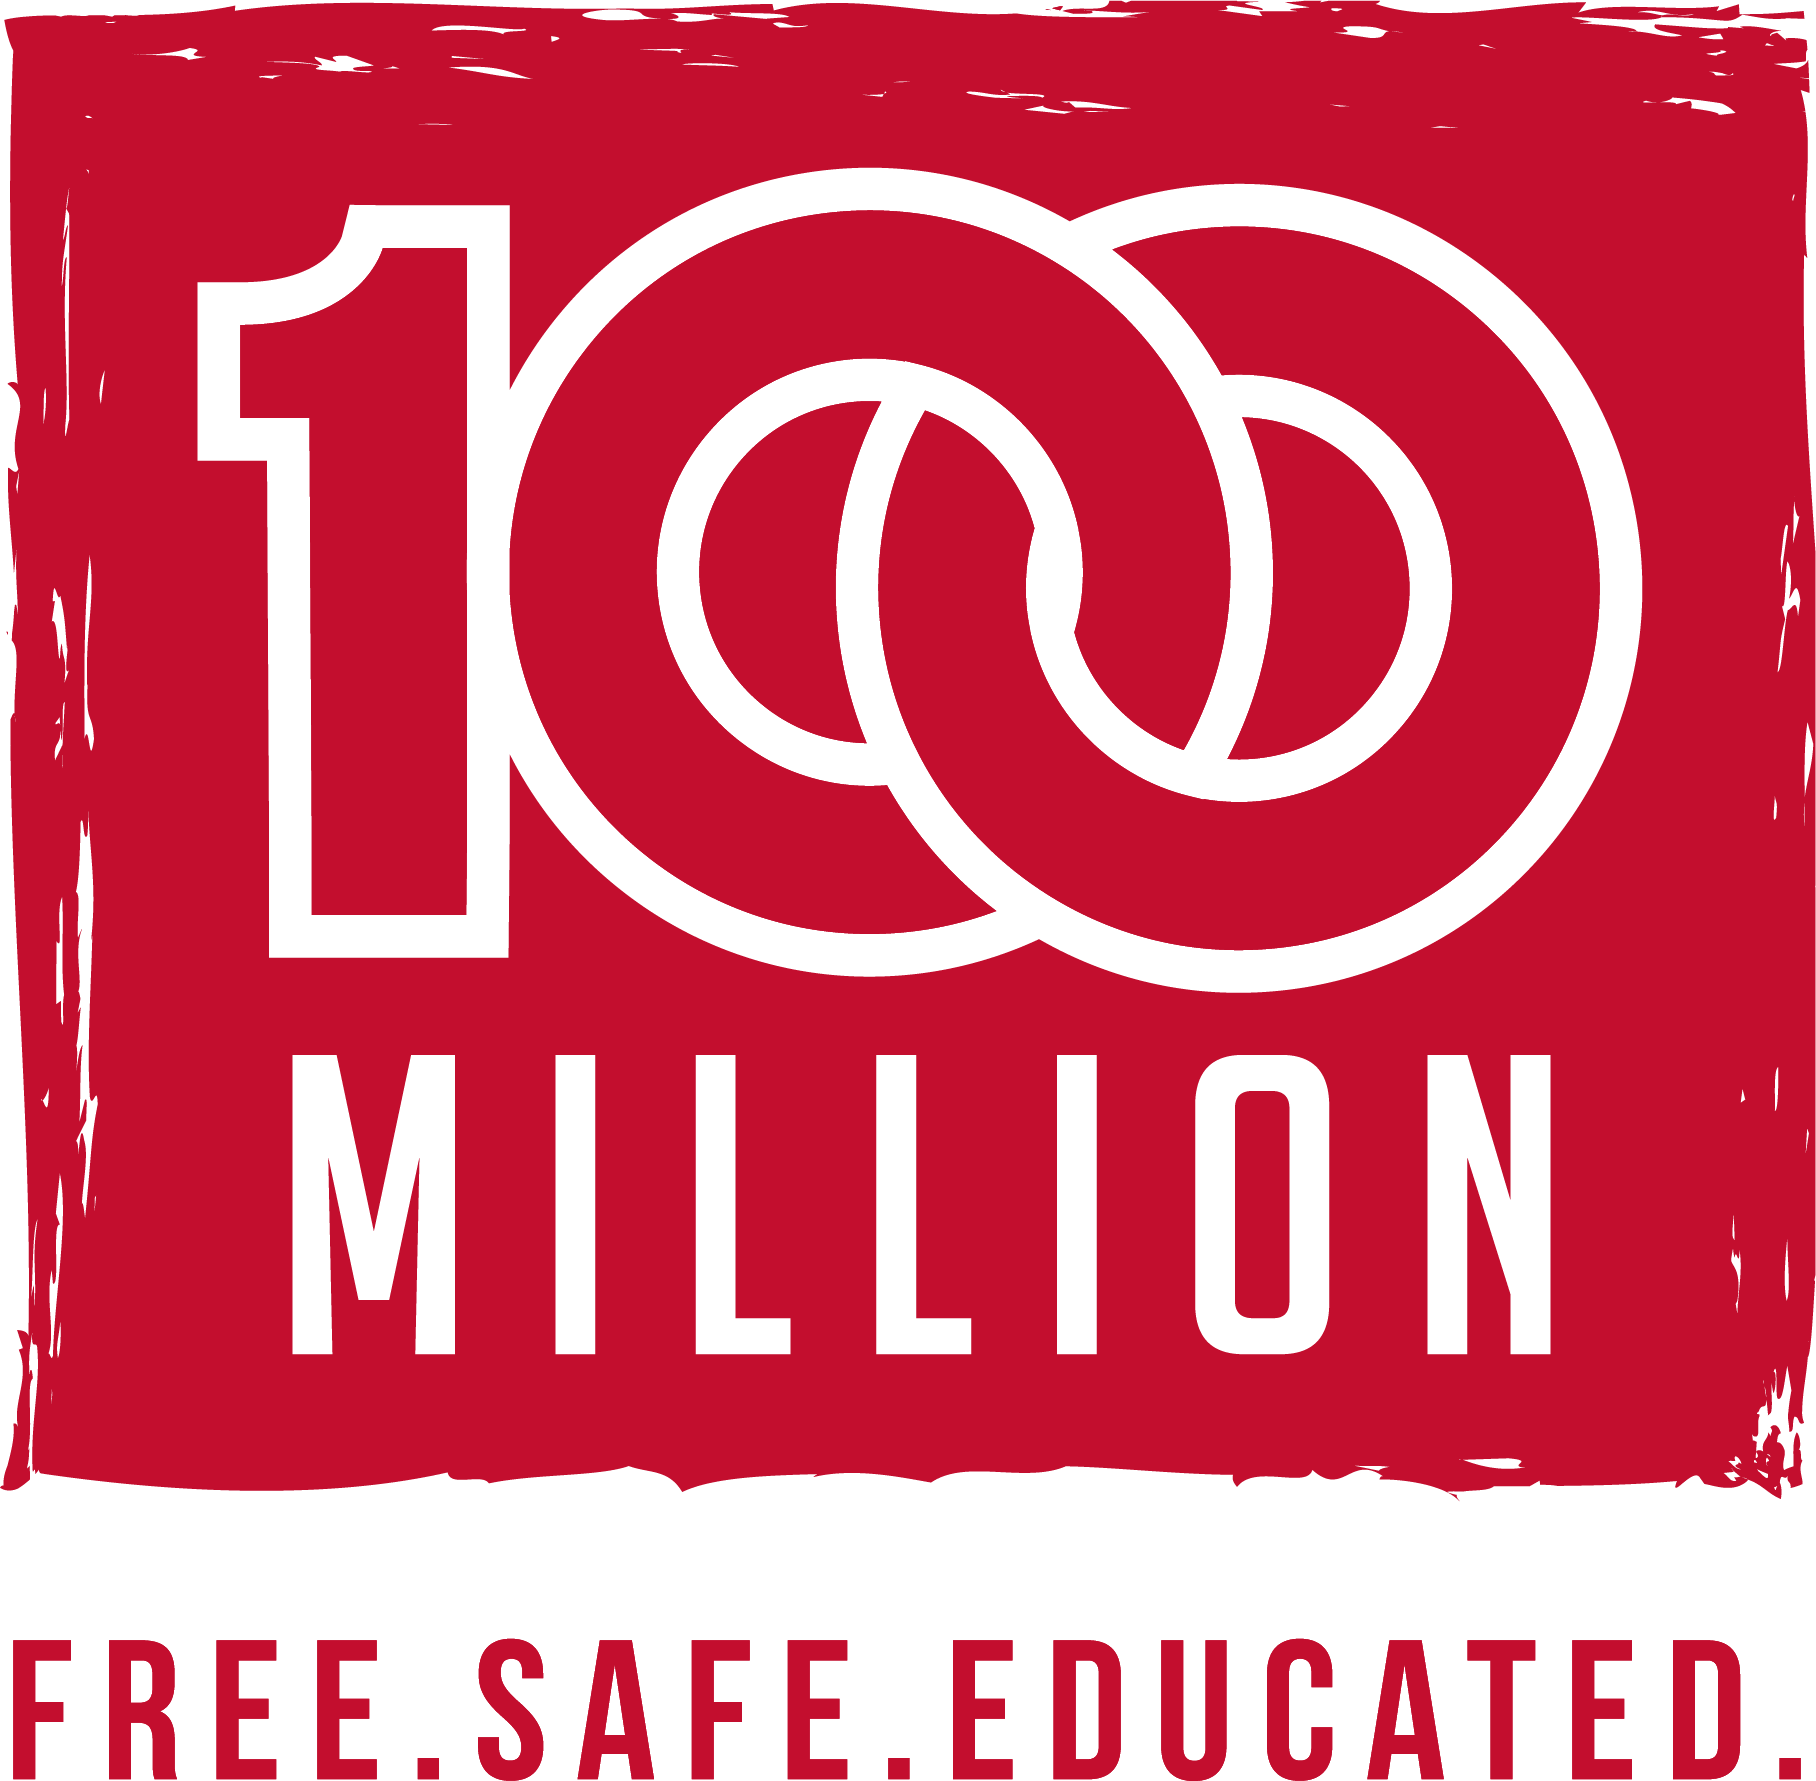 100_MILLION_LOGO RED.png